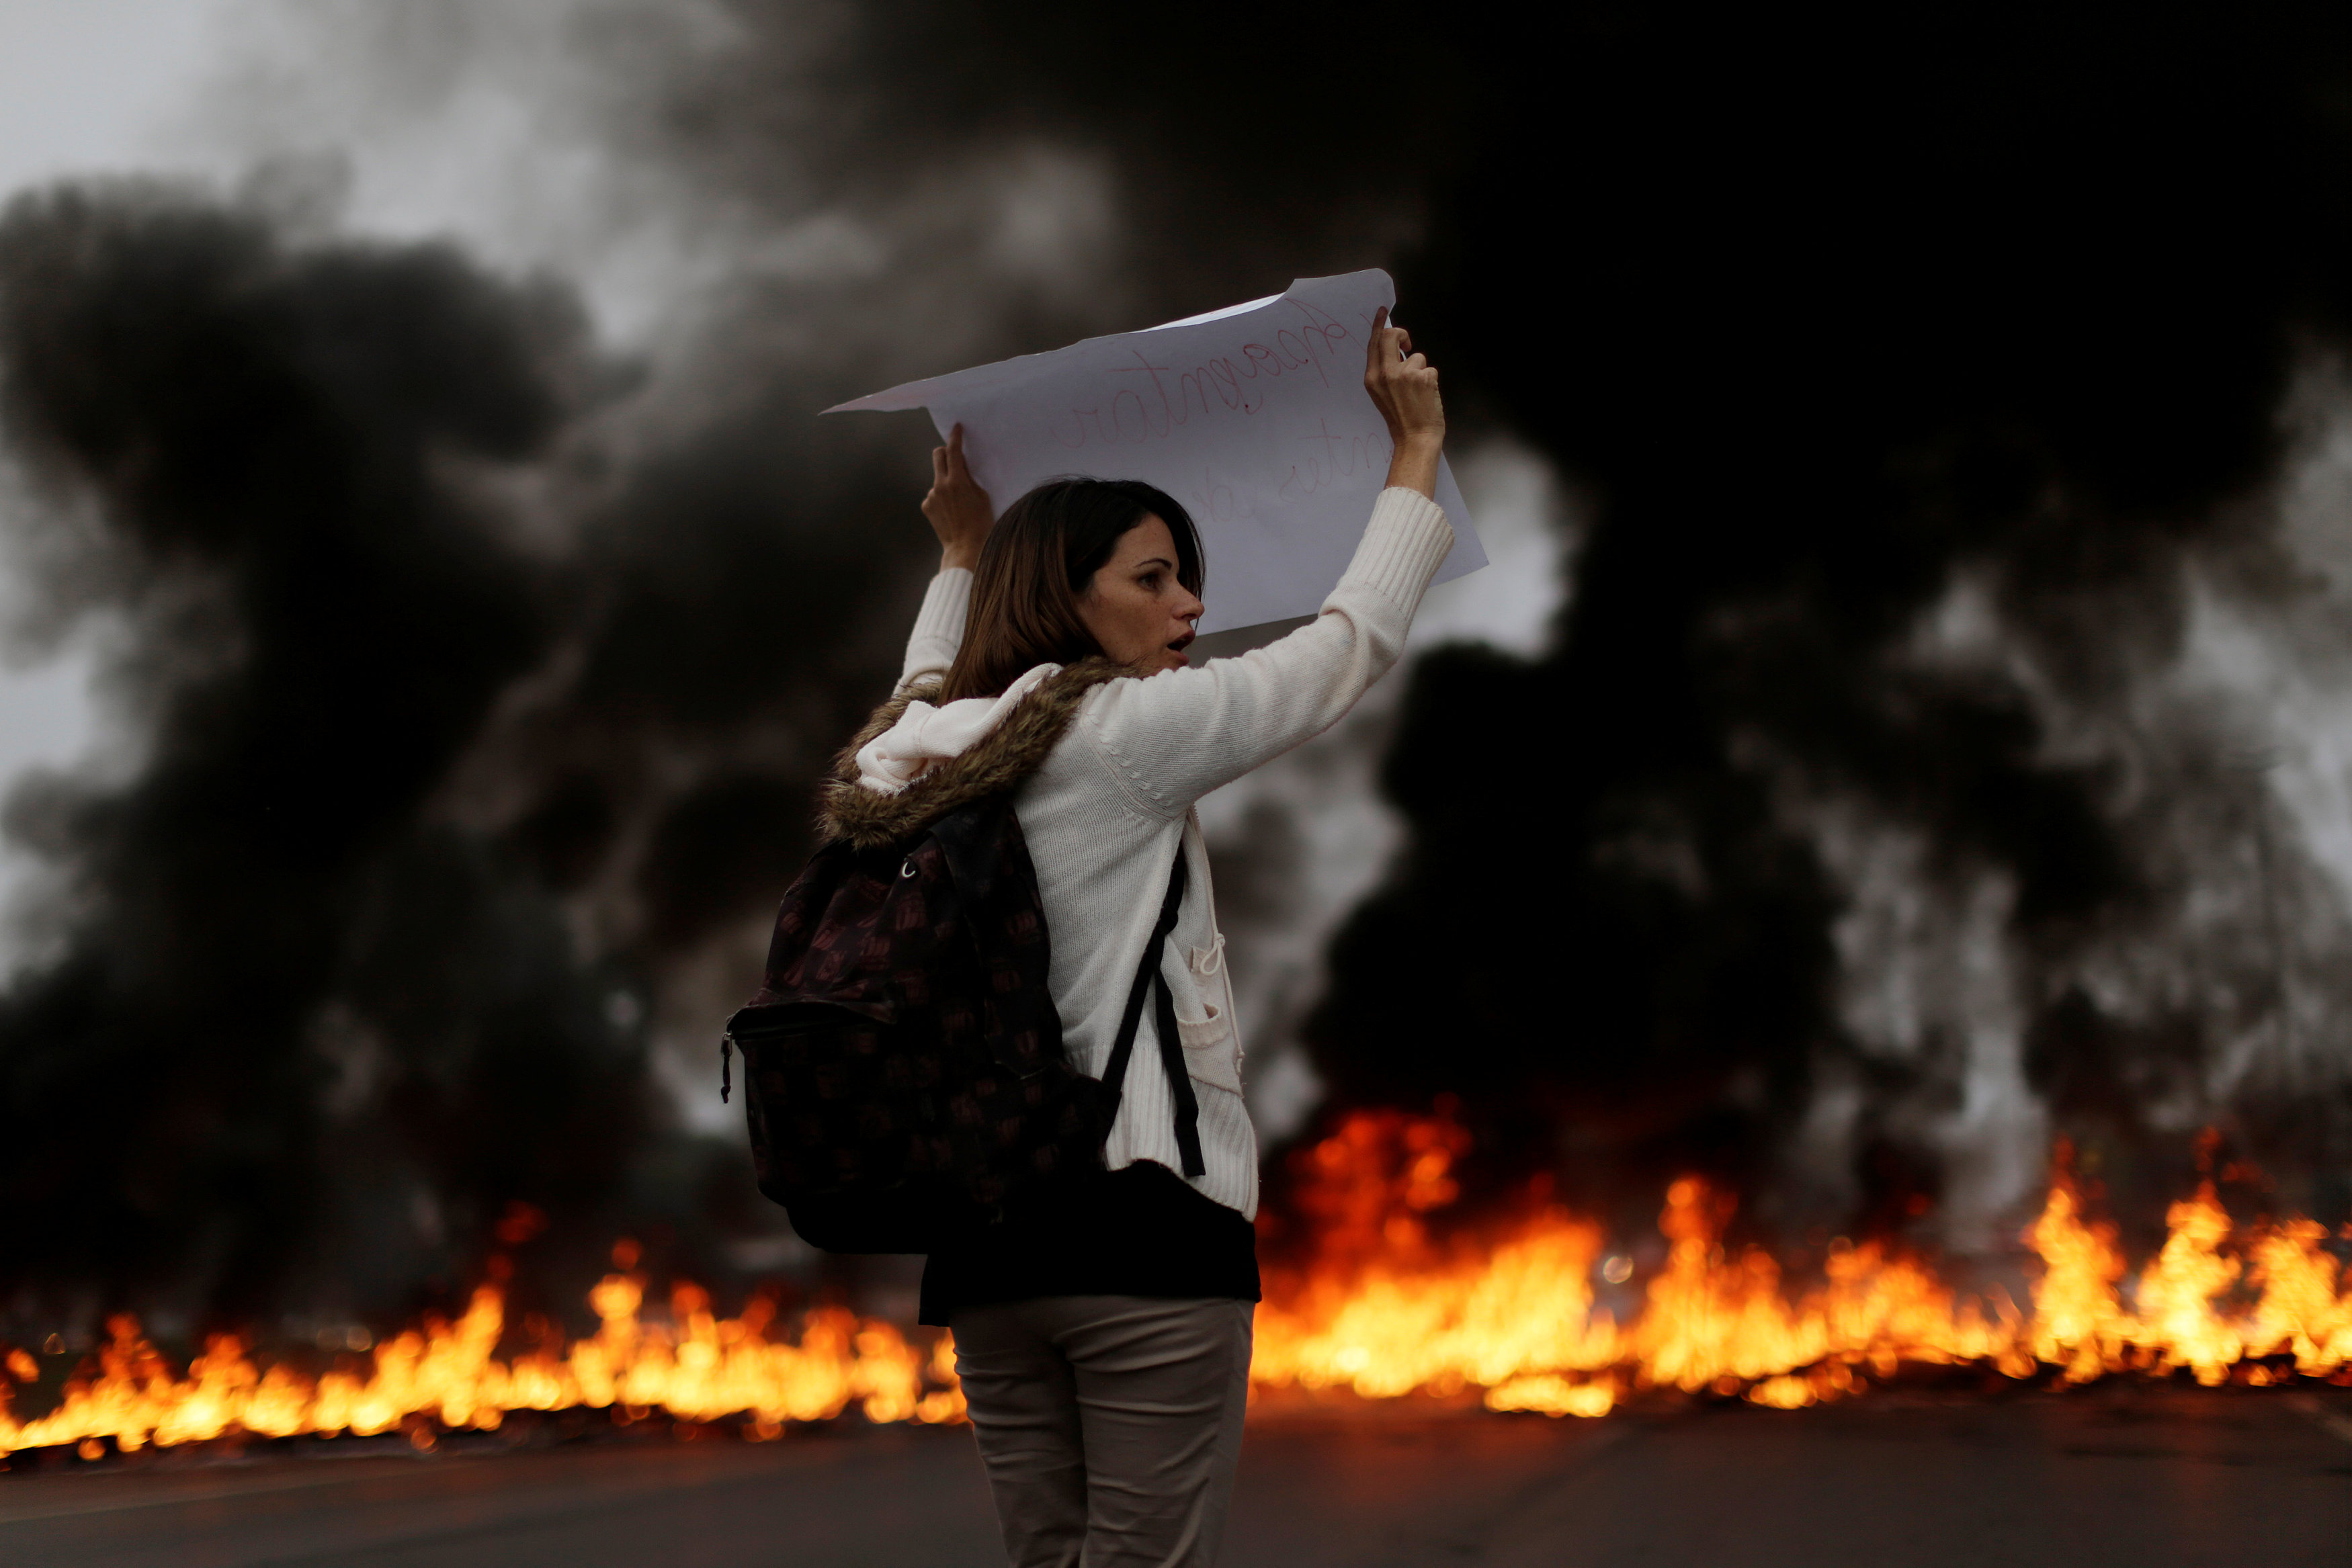 A demonstrators holds a placard in front of a burning barricade during a protest against President Michel Temer's proposal to reform Brazil's social security system in the early hours of general strike in Brasilia, Brazil, April 28, 2017. REUTERS/Ueslei Marcelino